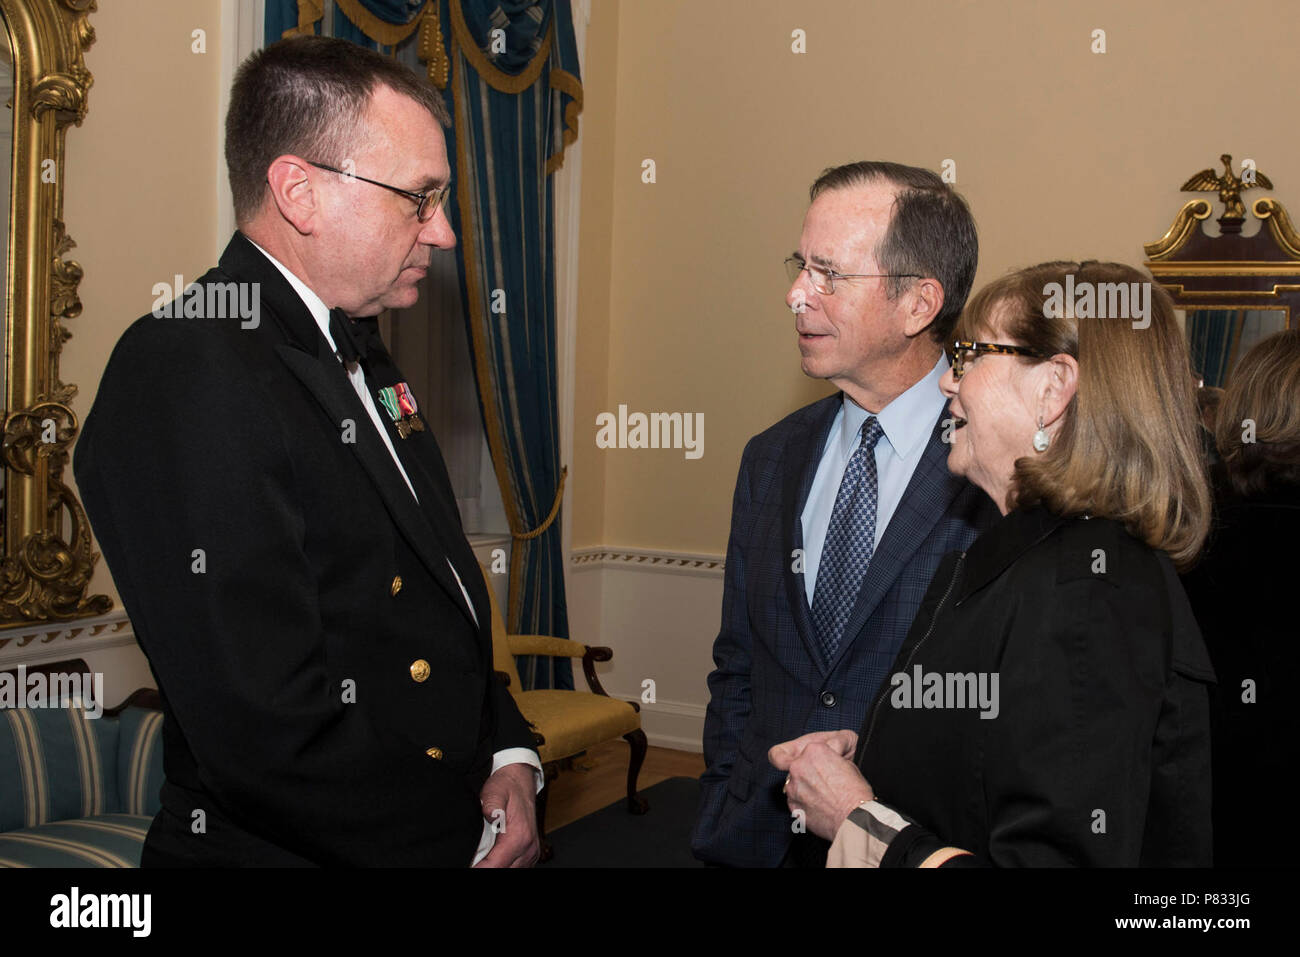 WASHINGTON (Dec. 18, 2016) Senior Chief Petty Officer Keith Arneson, left, meets former Chairman of the Joint Chiefs of Staff, Adm. Michael Mullen and his wife, right, backstage after the Sunday afternoon Navy Band Holiday Concert held at DAR Constitiution Hall in Washington, D.C. The Navy Band hosted thousands of people from the Washington area as well as hundreds of senior Navy and government officials during its three annual holiday concerts. - Stock Image